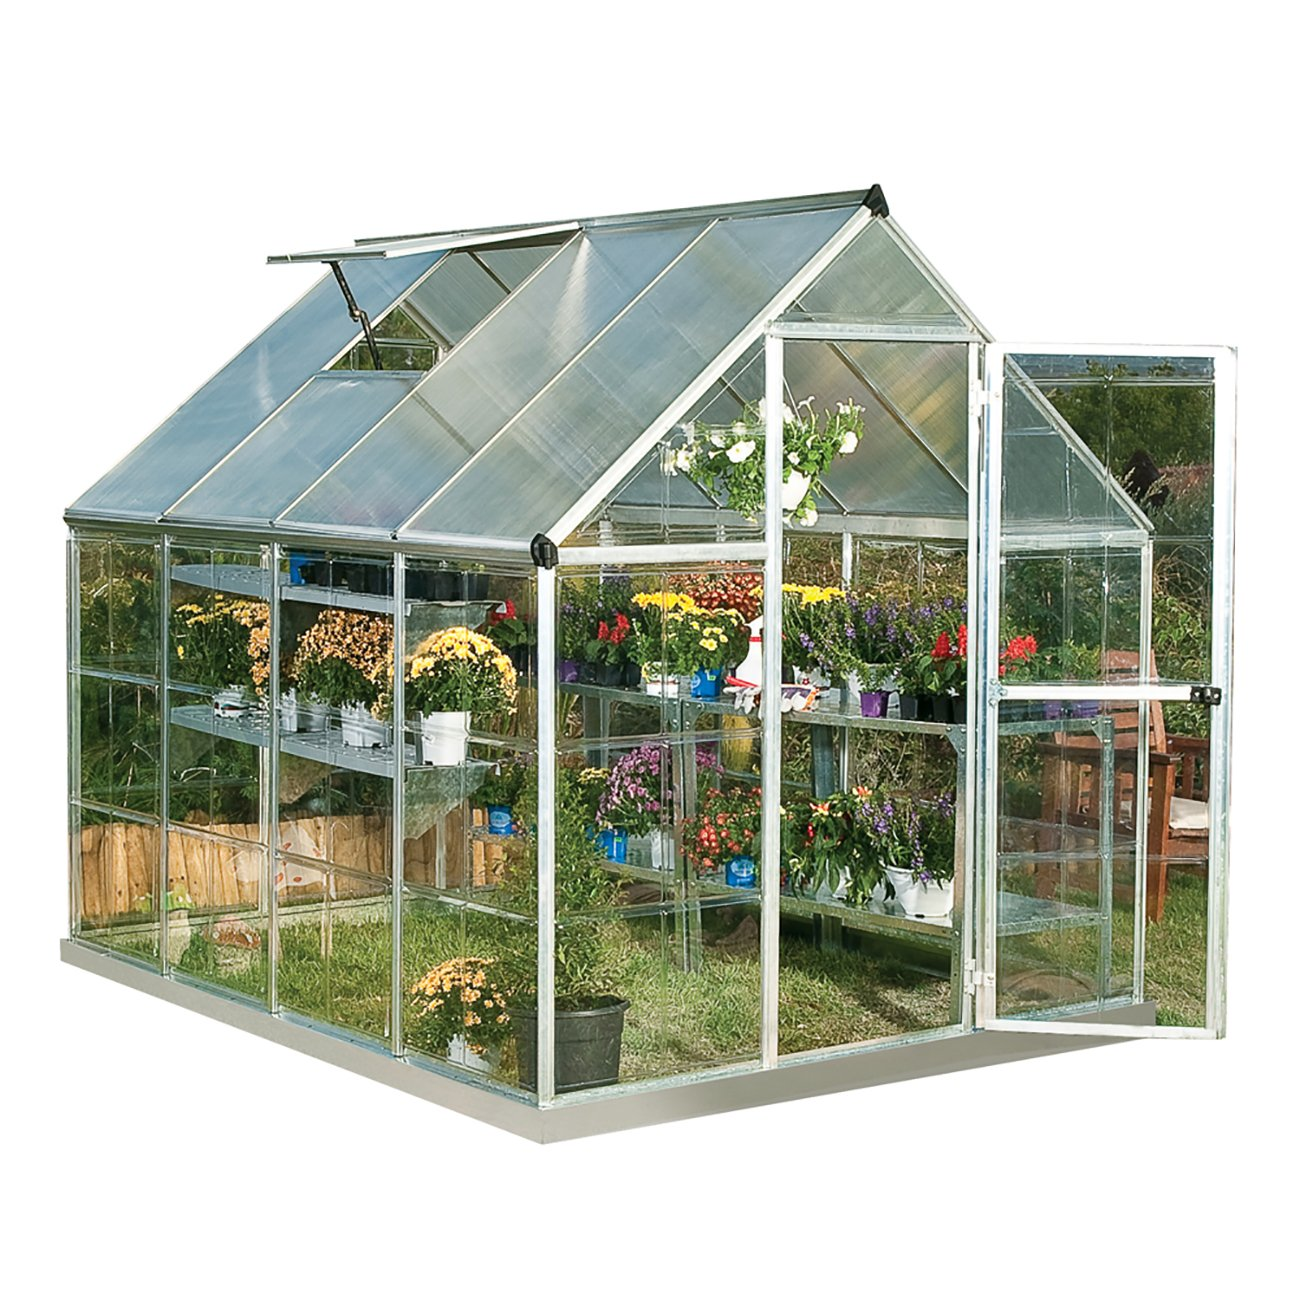 Palram Nature Series Hybrid Hobby Greenhouse - 6' x 8' x 7', Silver by Palram